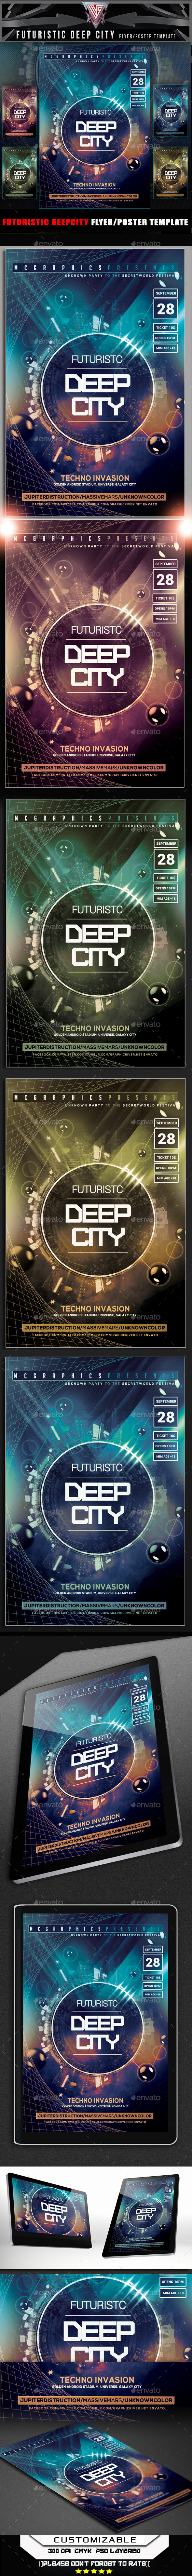 GraphicRiver Futuristic Deep City Flyer Template 11956138